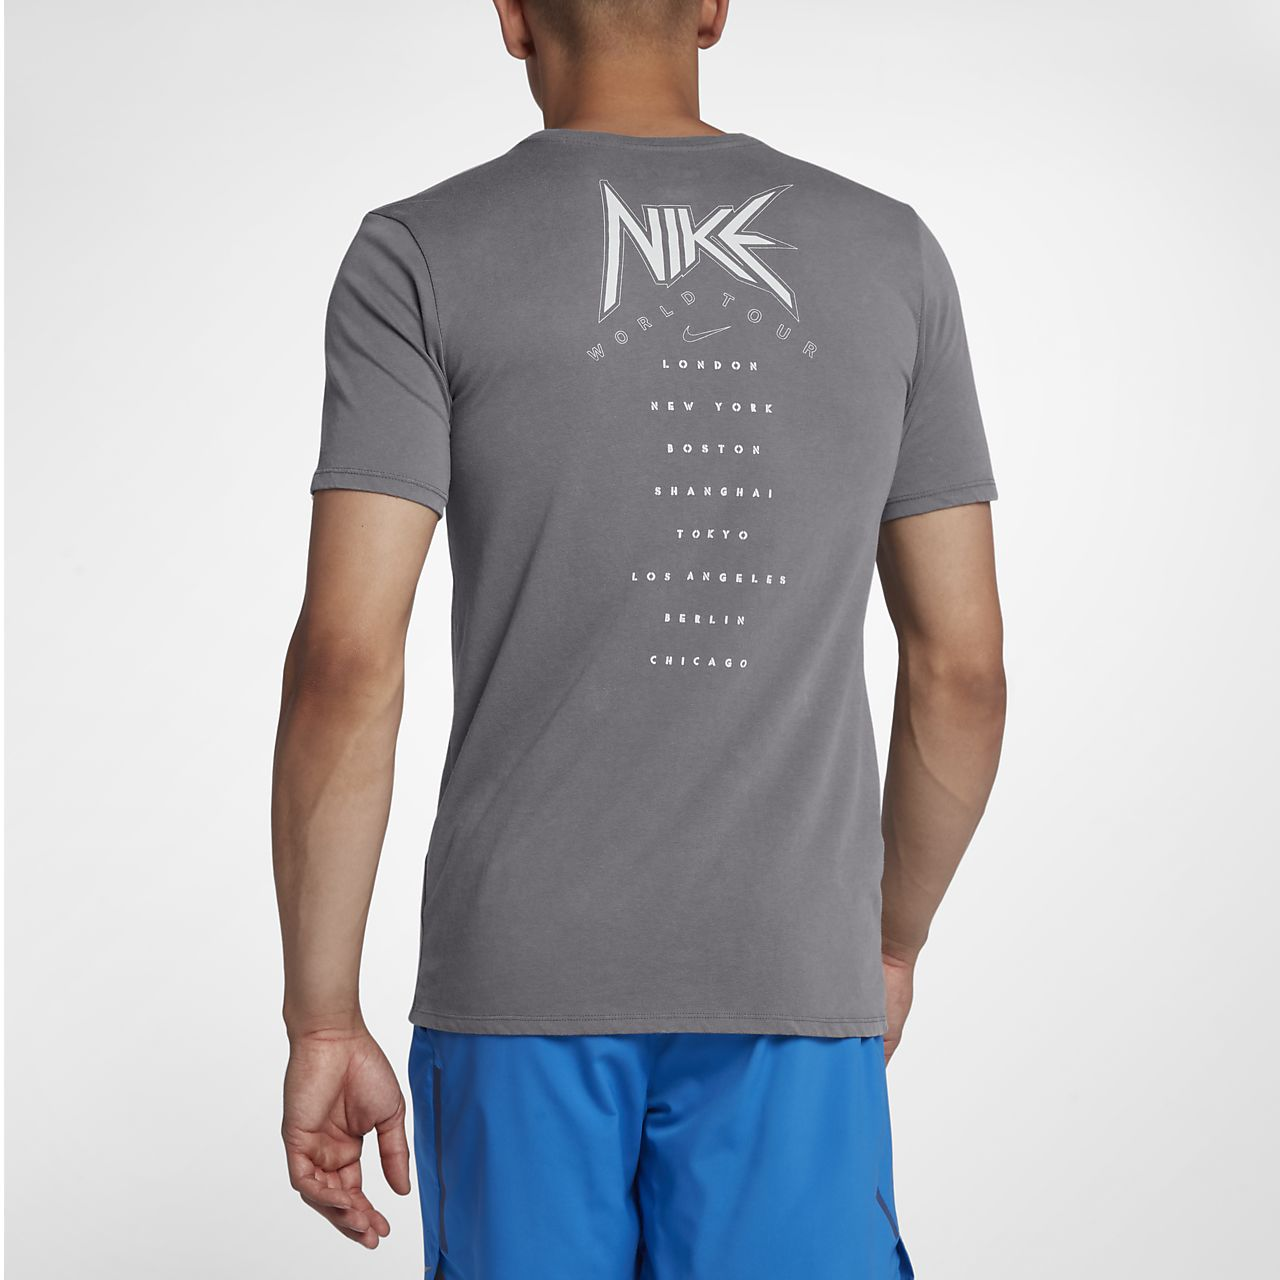 Nike Dri FIT Men's Running T Shirt